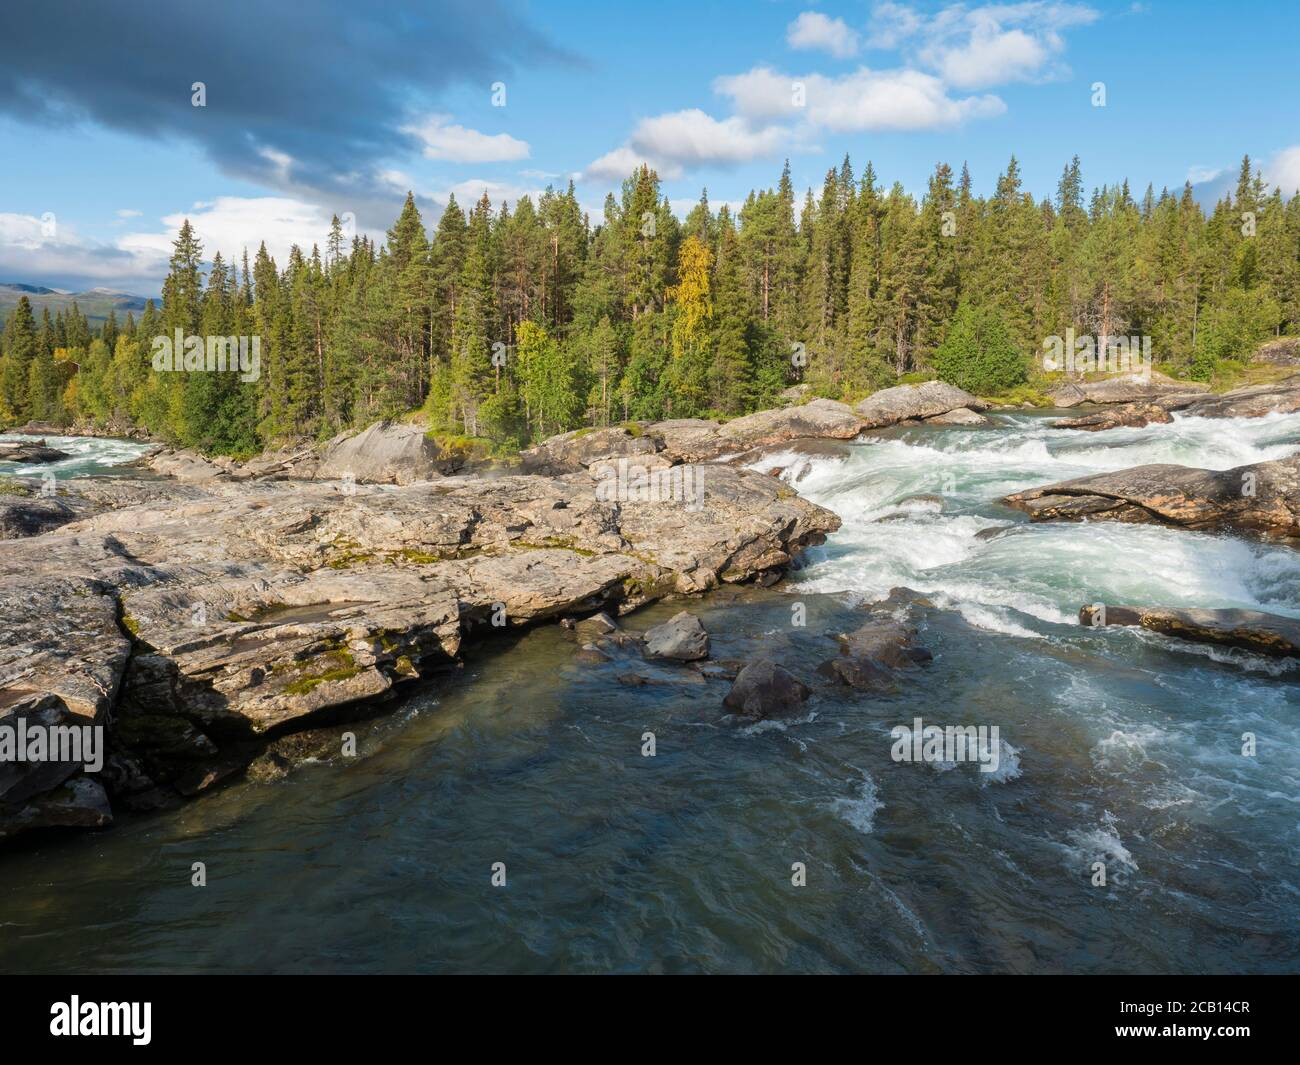 Beautiful northern landscape with wild glacial river Kamajokk, boulders and spruce tree forest in Kvikkjokk in Swedish Lapland. Summer sunny day Stock Photo